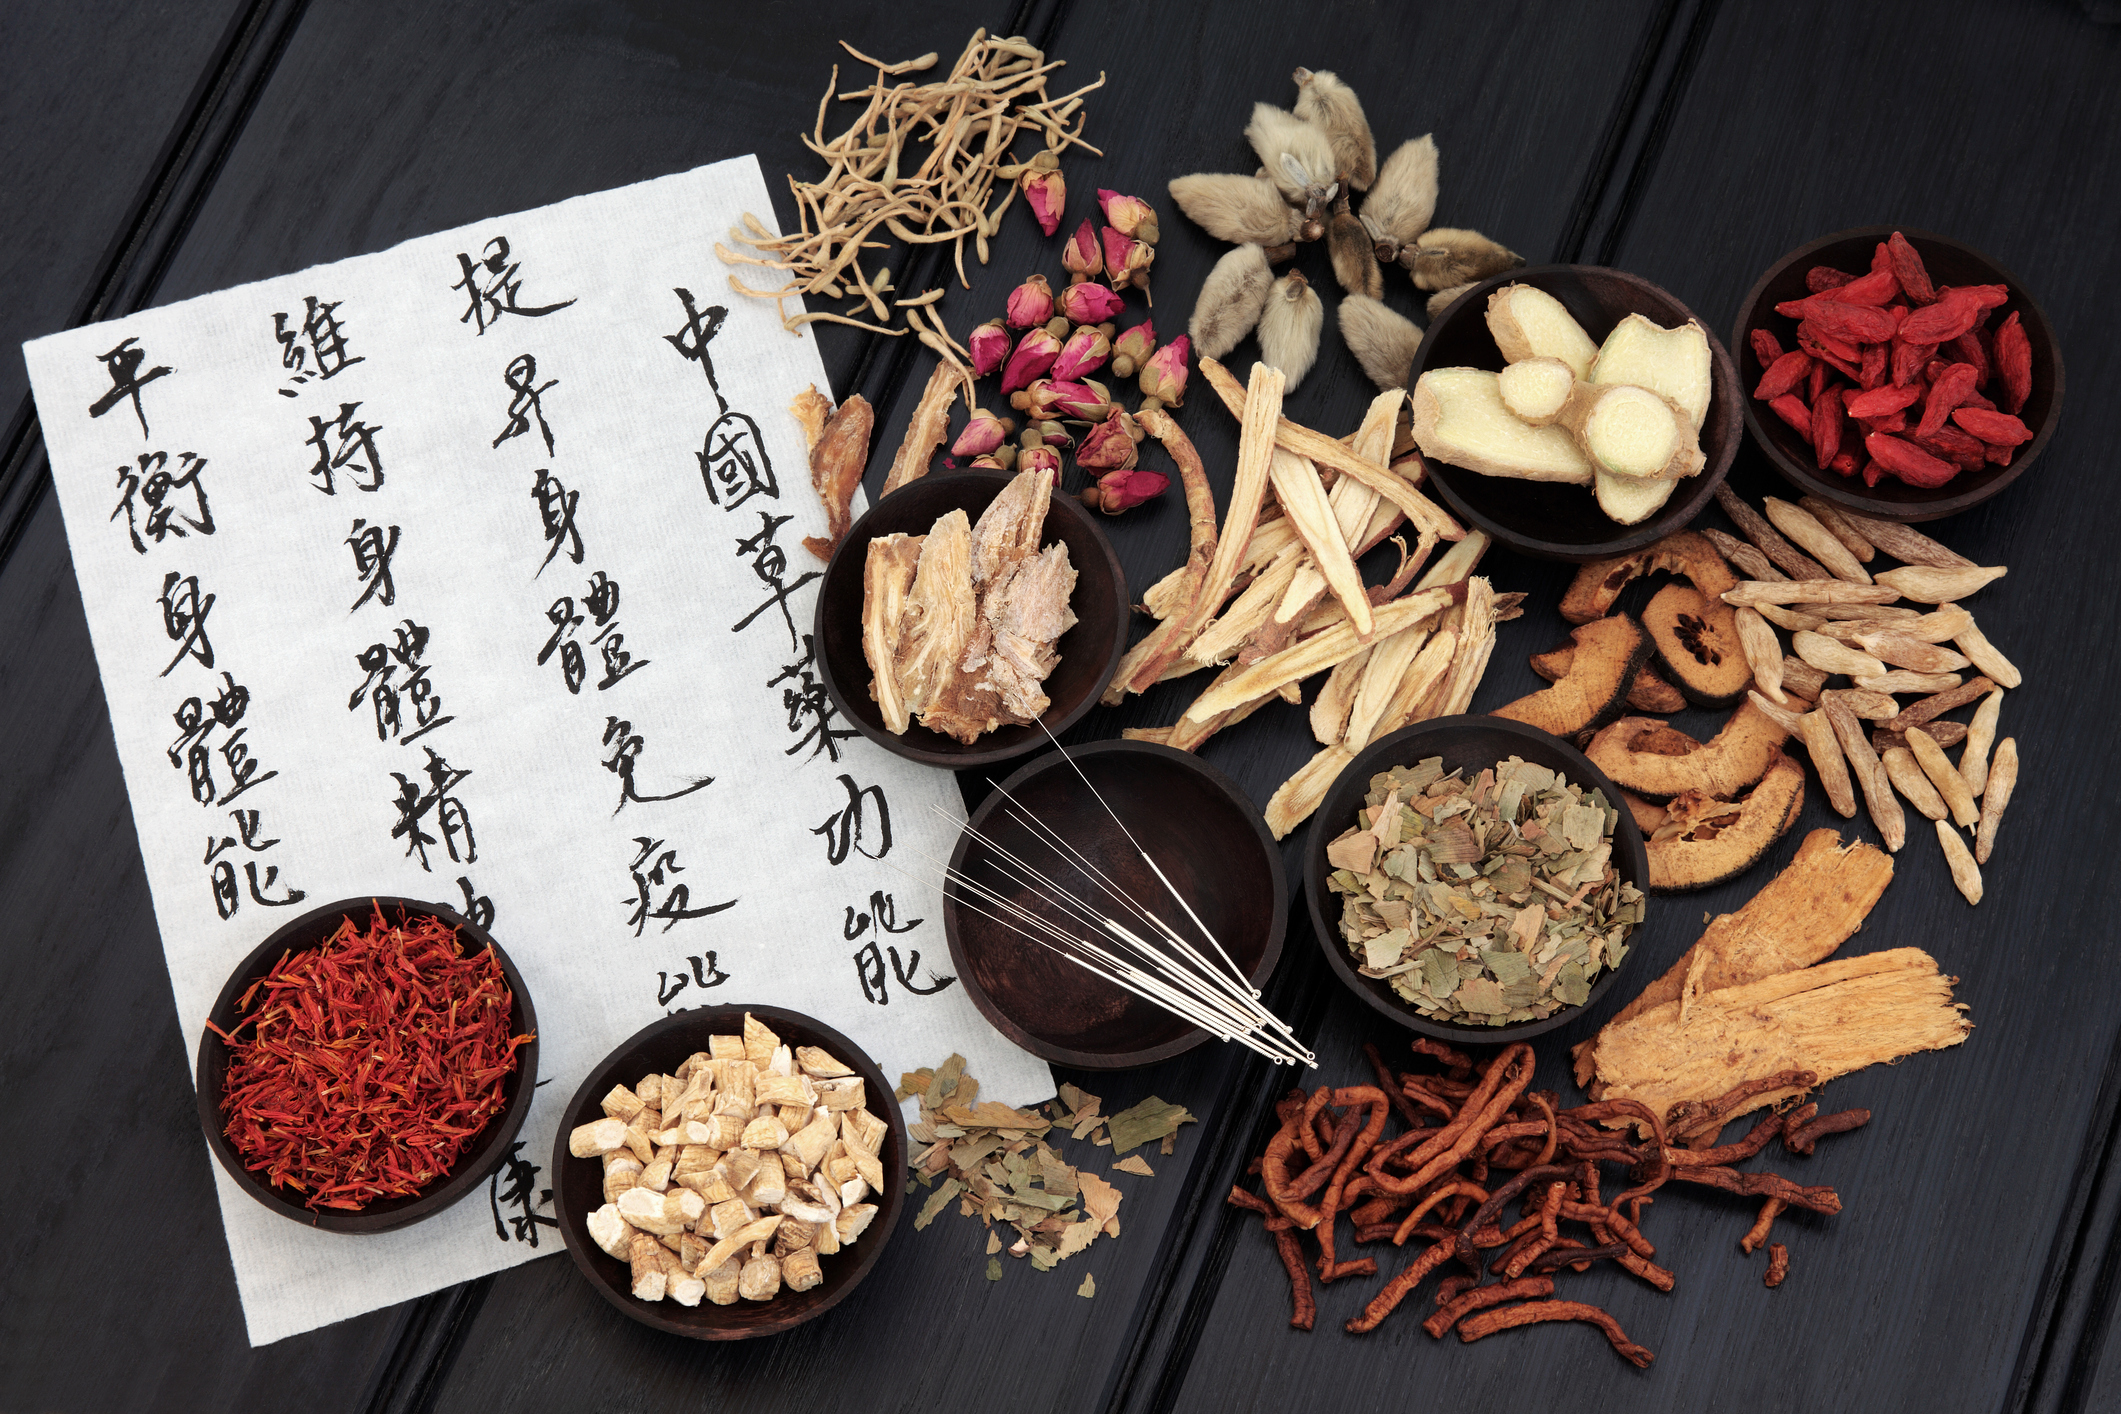 Chiese herbal treatment - 10 Bizarre Health Habits That Come From Chinese Medicine